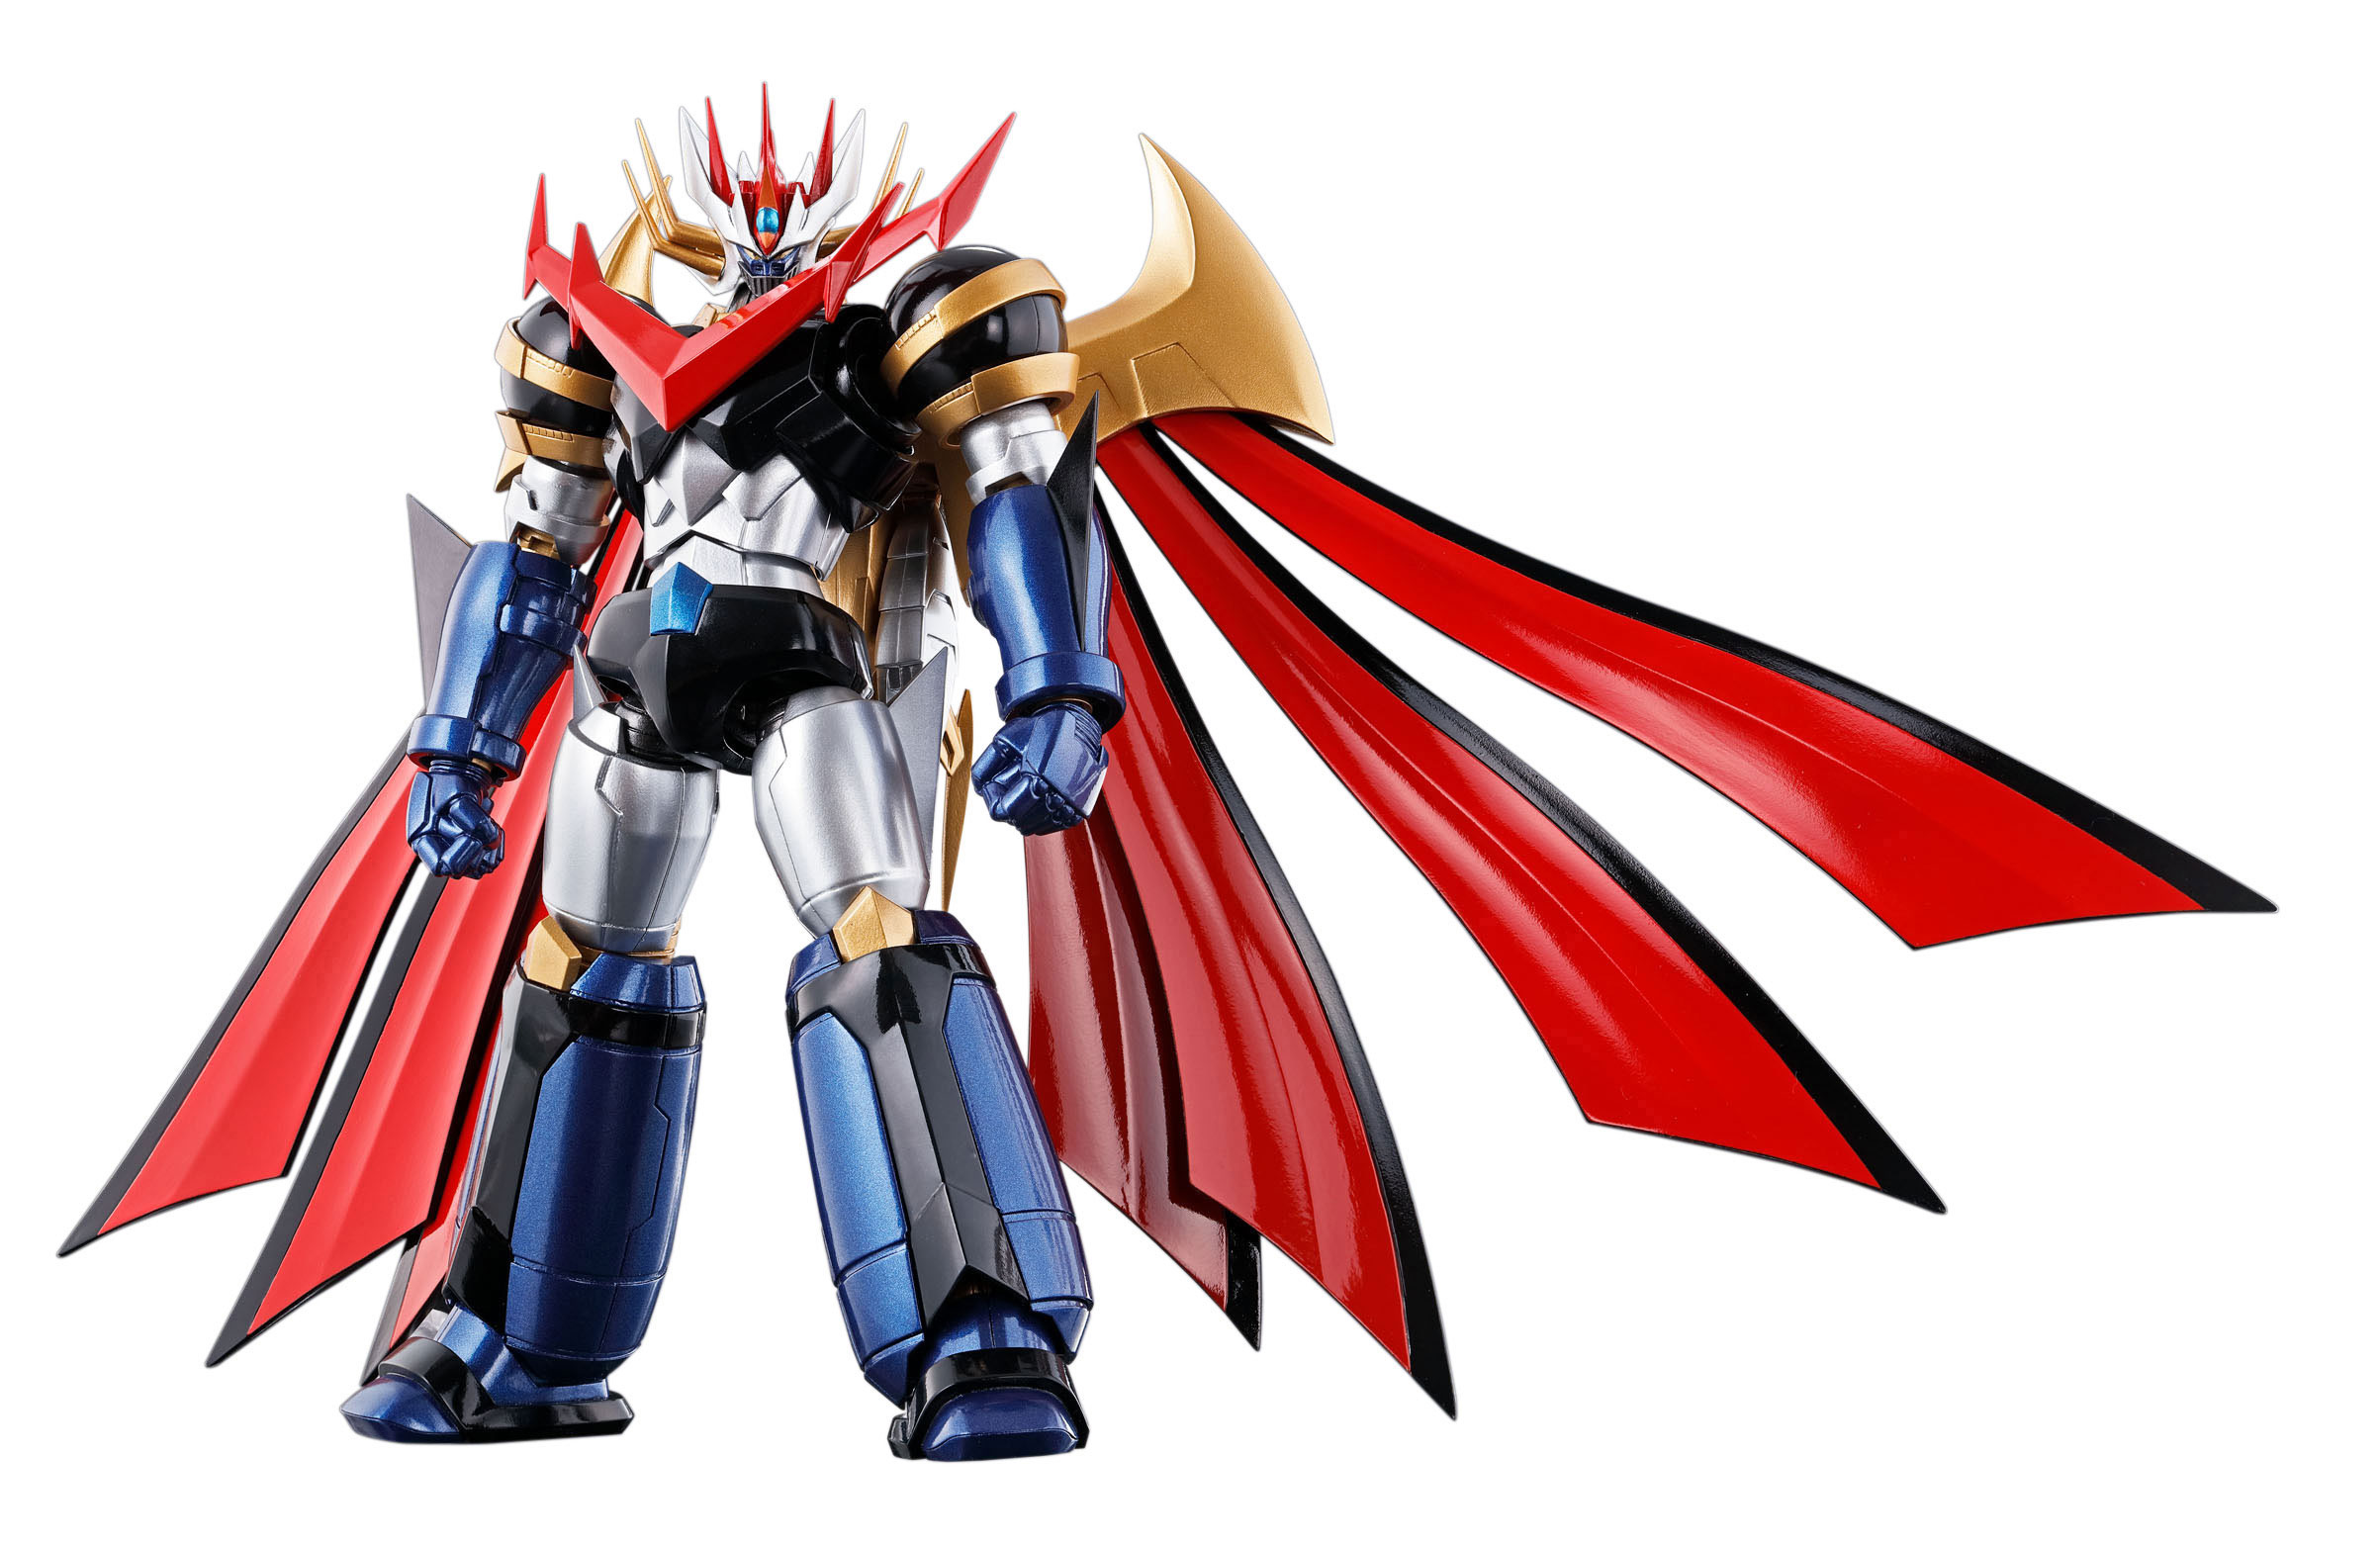 Bandai Super Robot Chogokin Mazinemperor G Super Robot Wars V IN STOCK USA